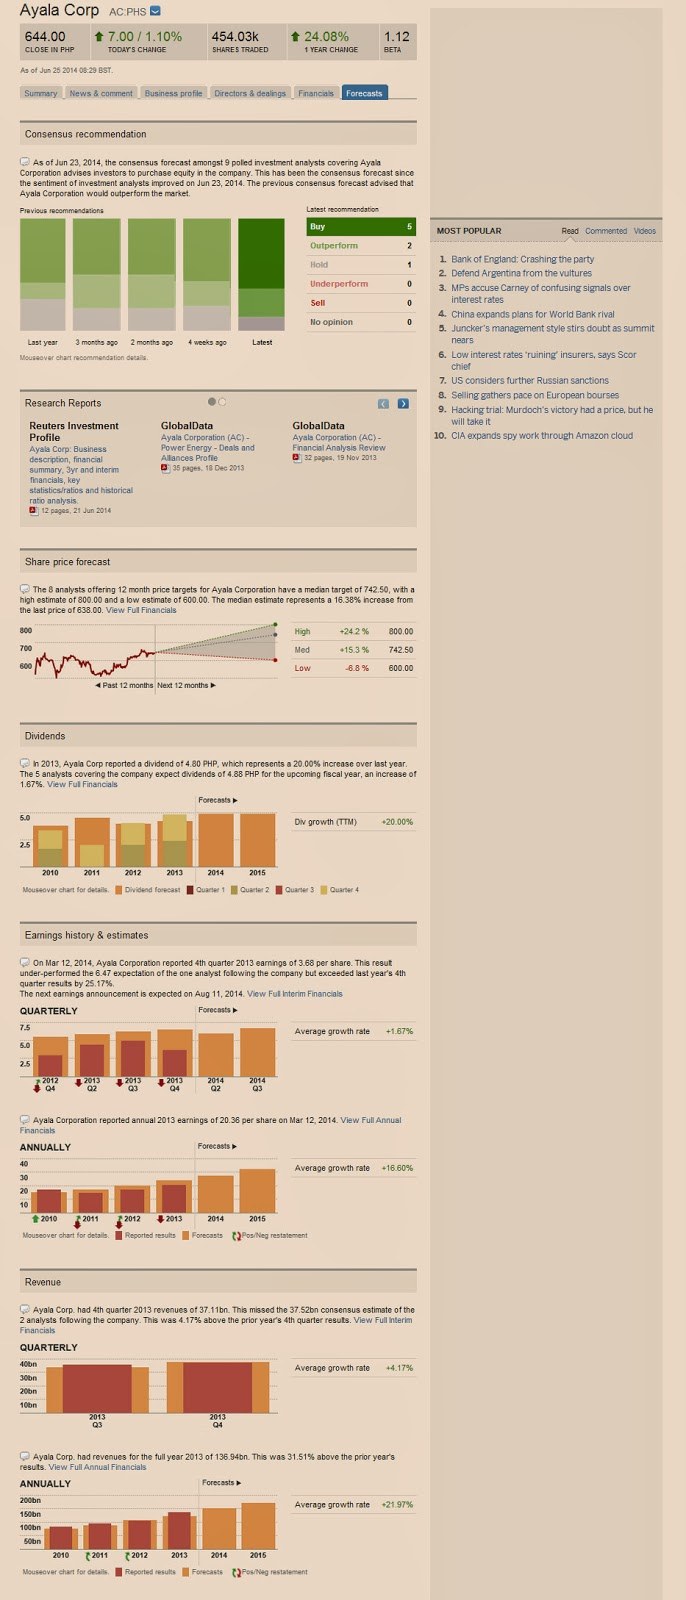 Financial Times Stock Forecast